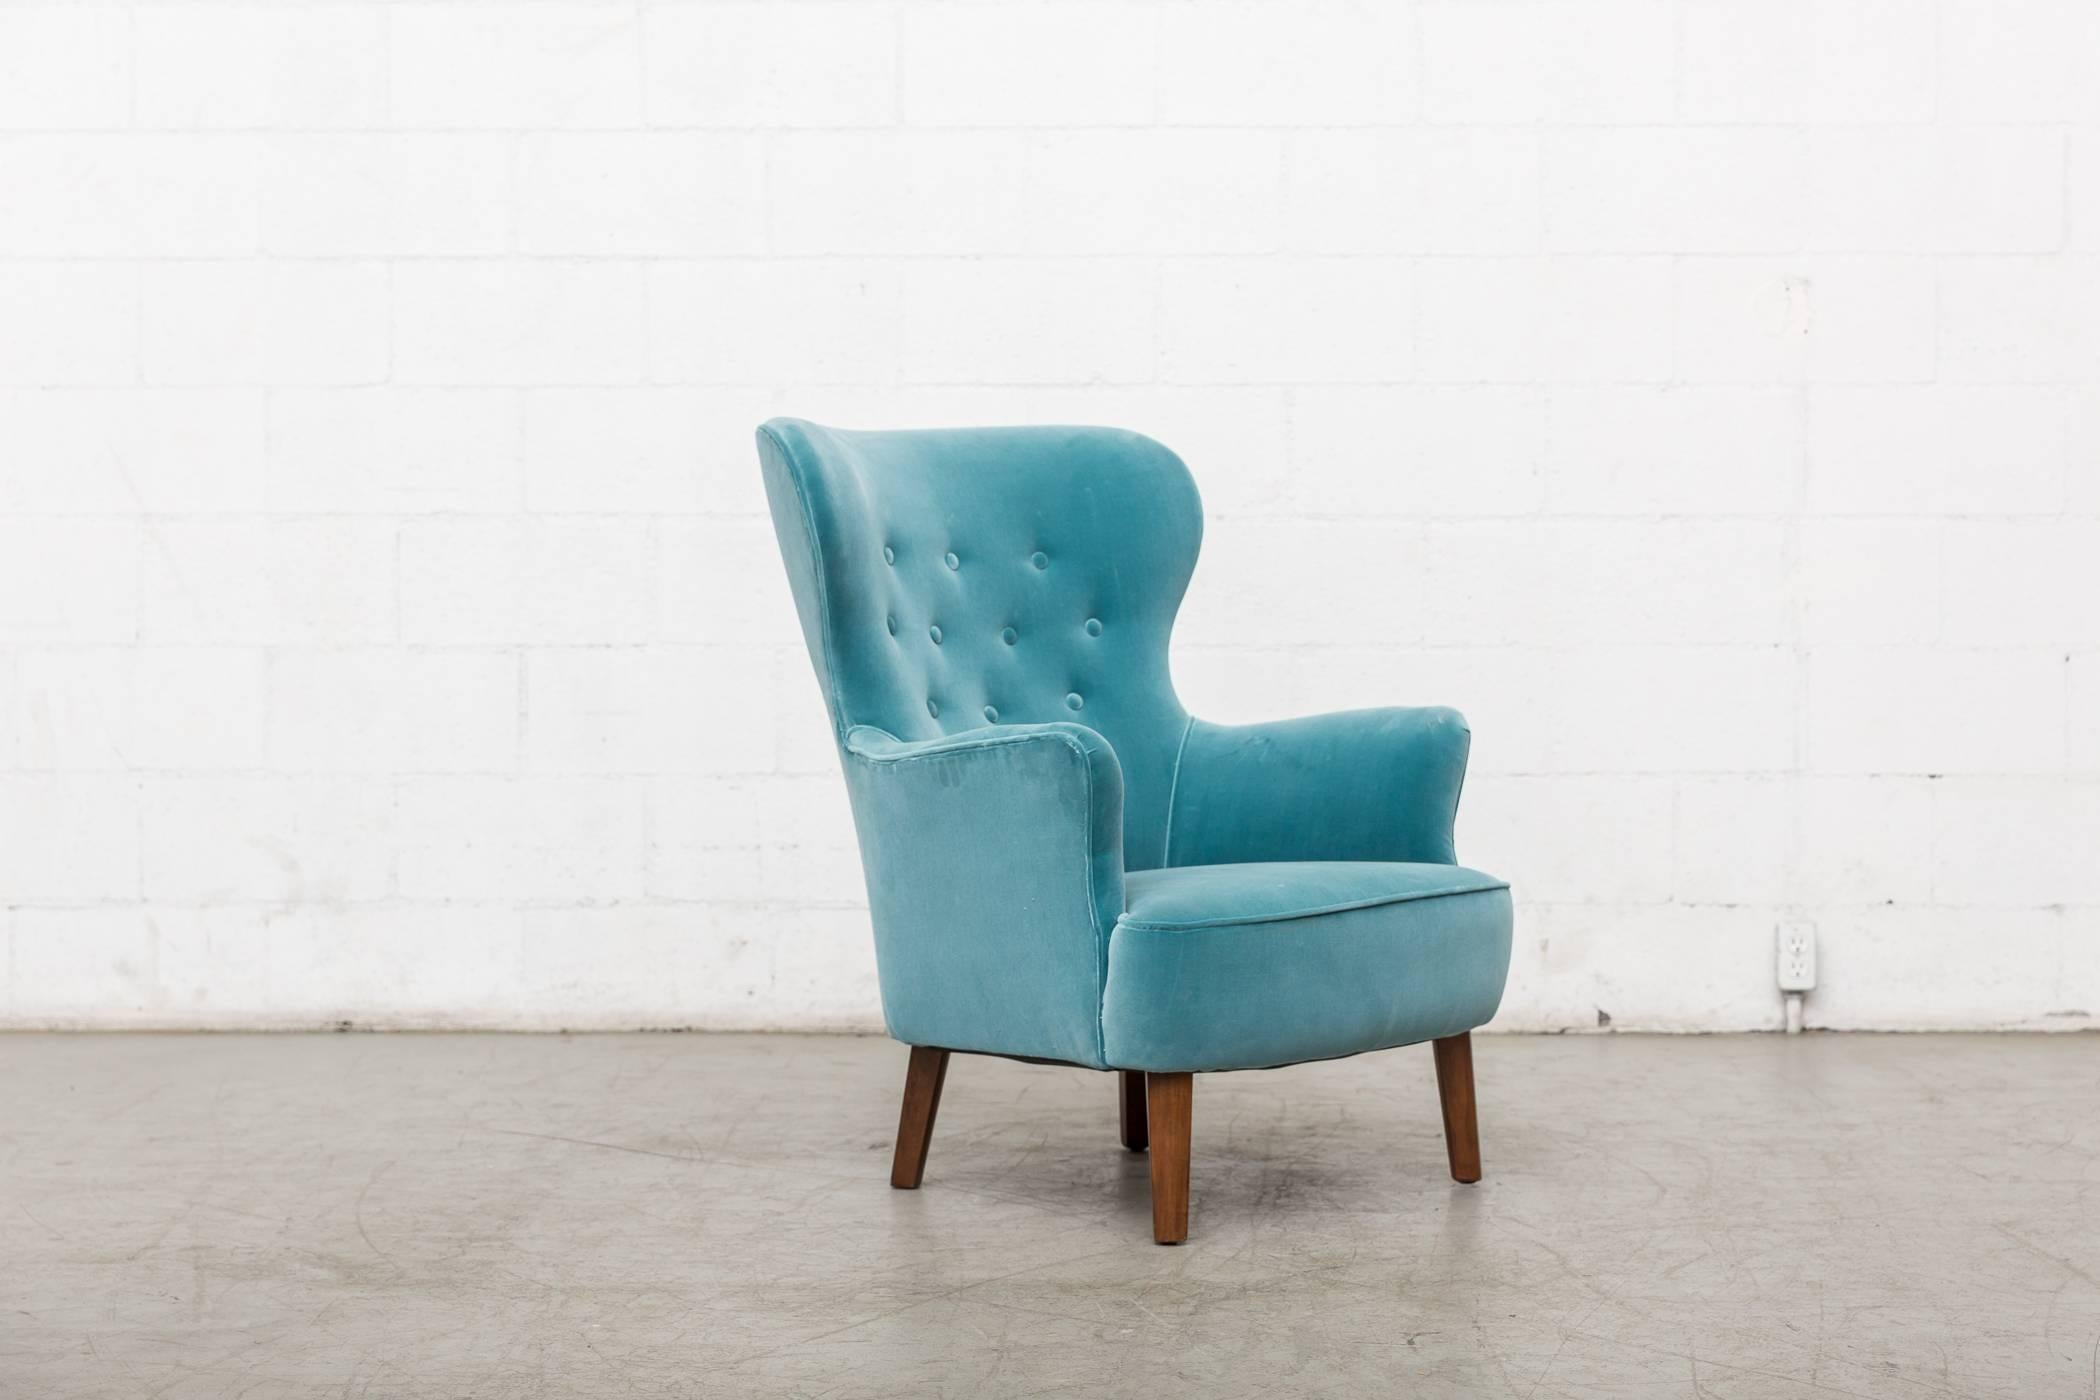 Mid-Century Modern Turquoise Theo Ruth Lounge Chair for Artifort For Sale & Turquoise Theo Ruth Lounge Chair for Artifort For Sale at 1stdibs